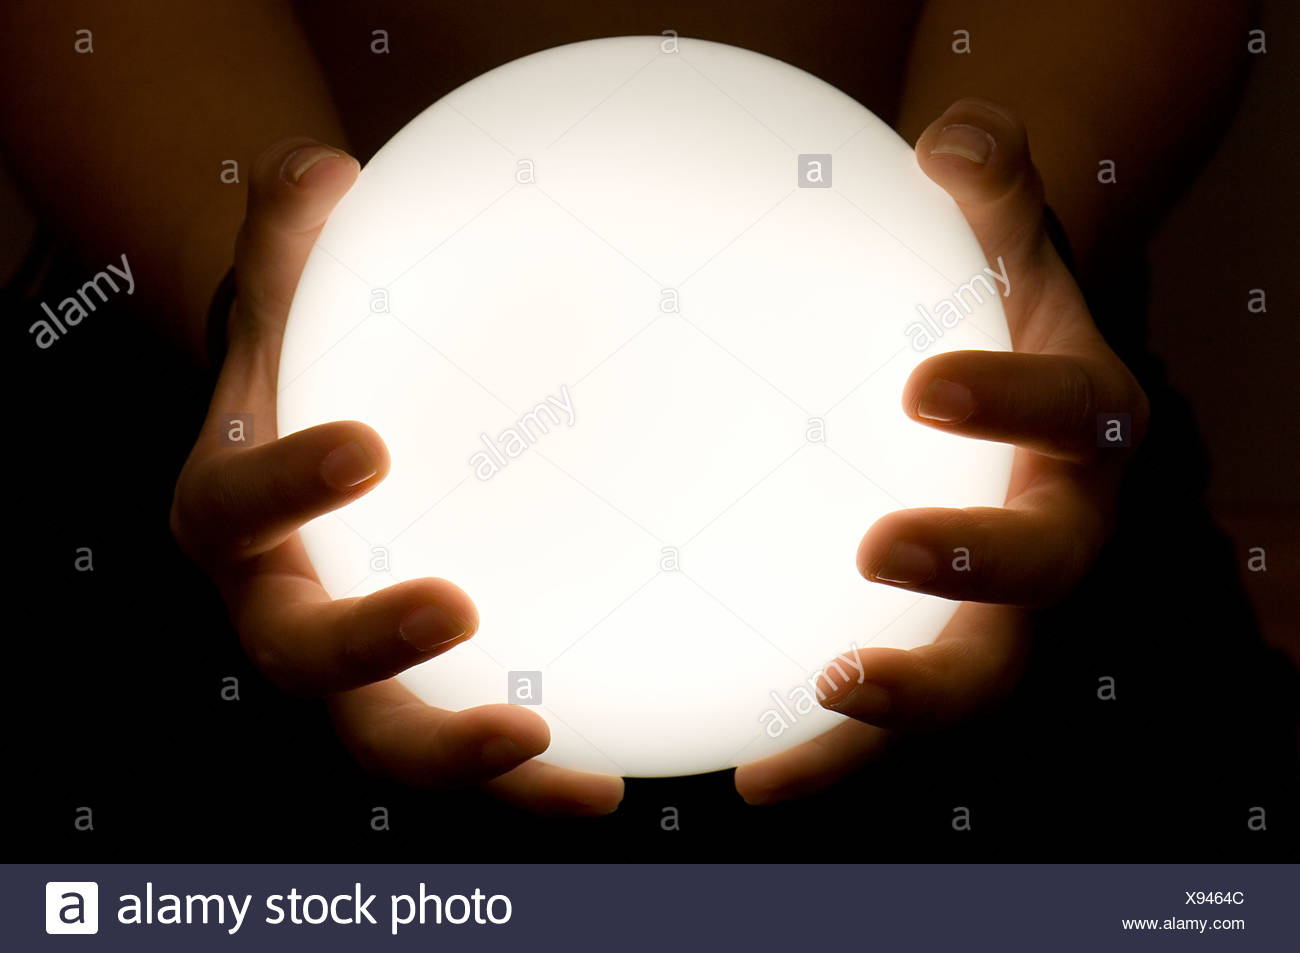 Close-up of hands holding luminous ball - Stock Image